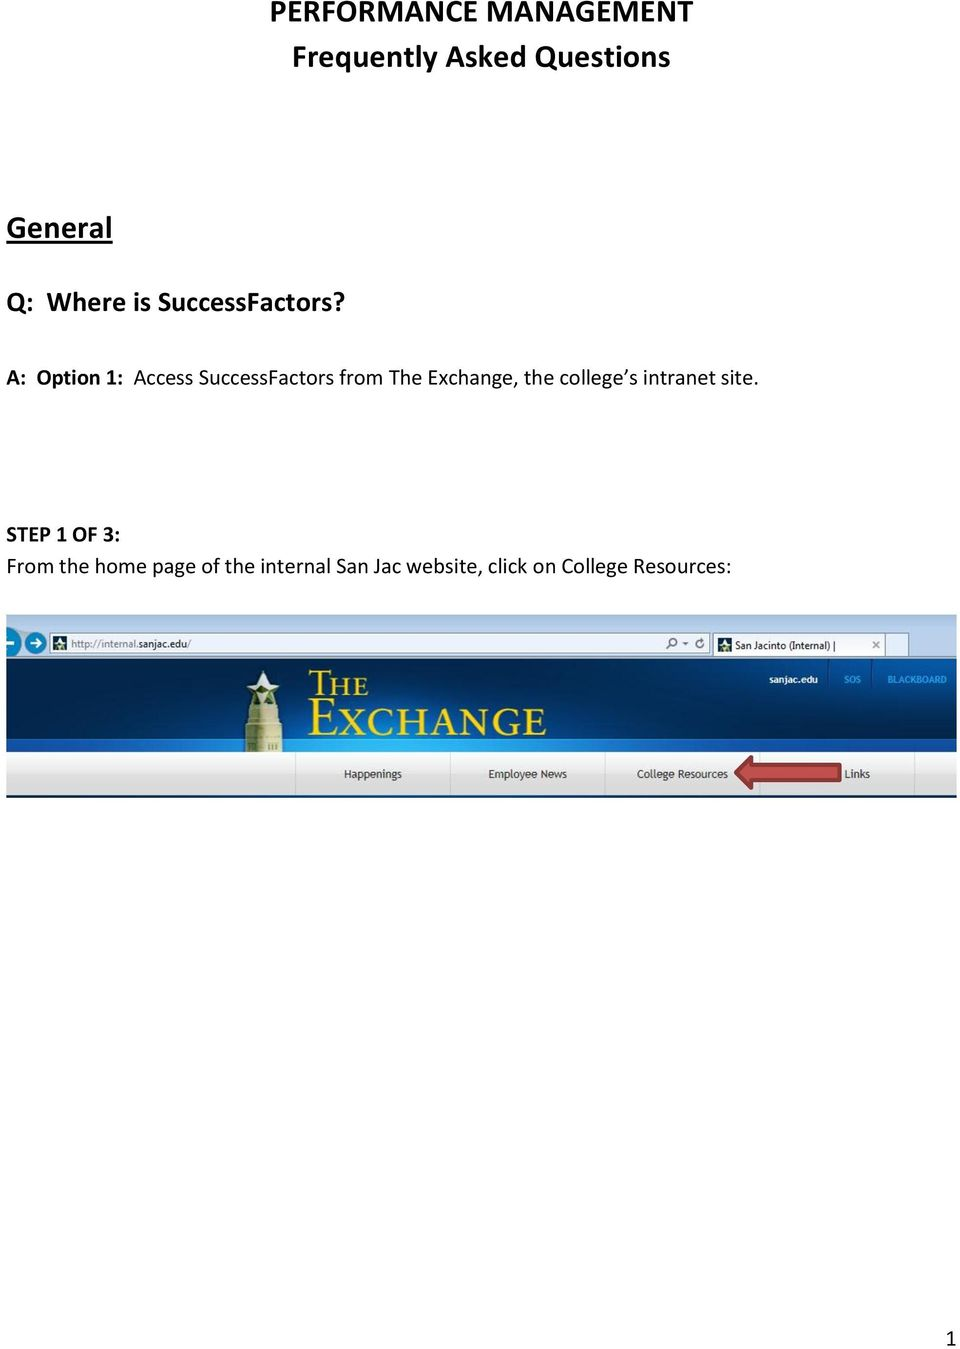 A: Option 1: Access SuccessFactors from The Exchange, the college